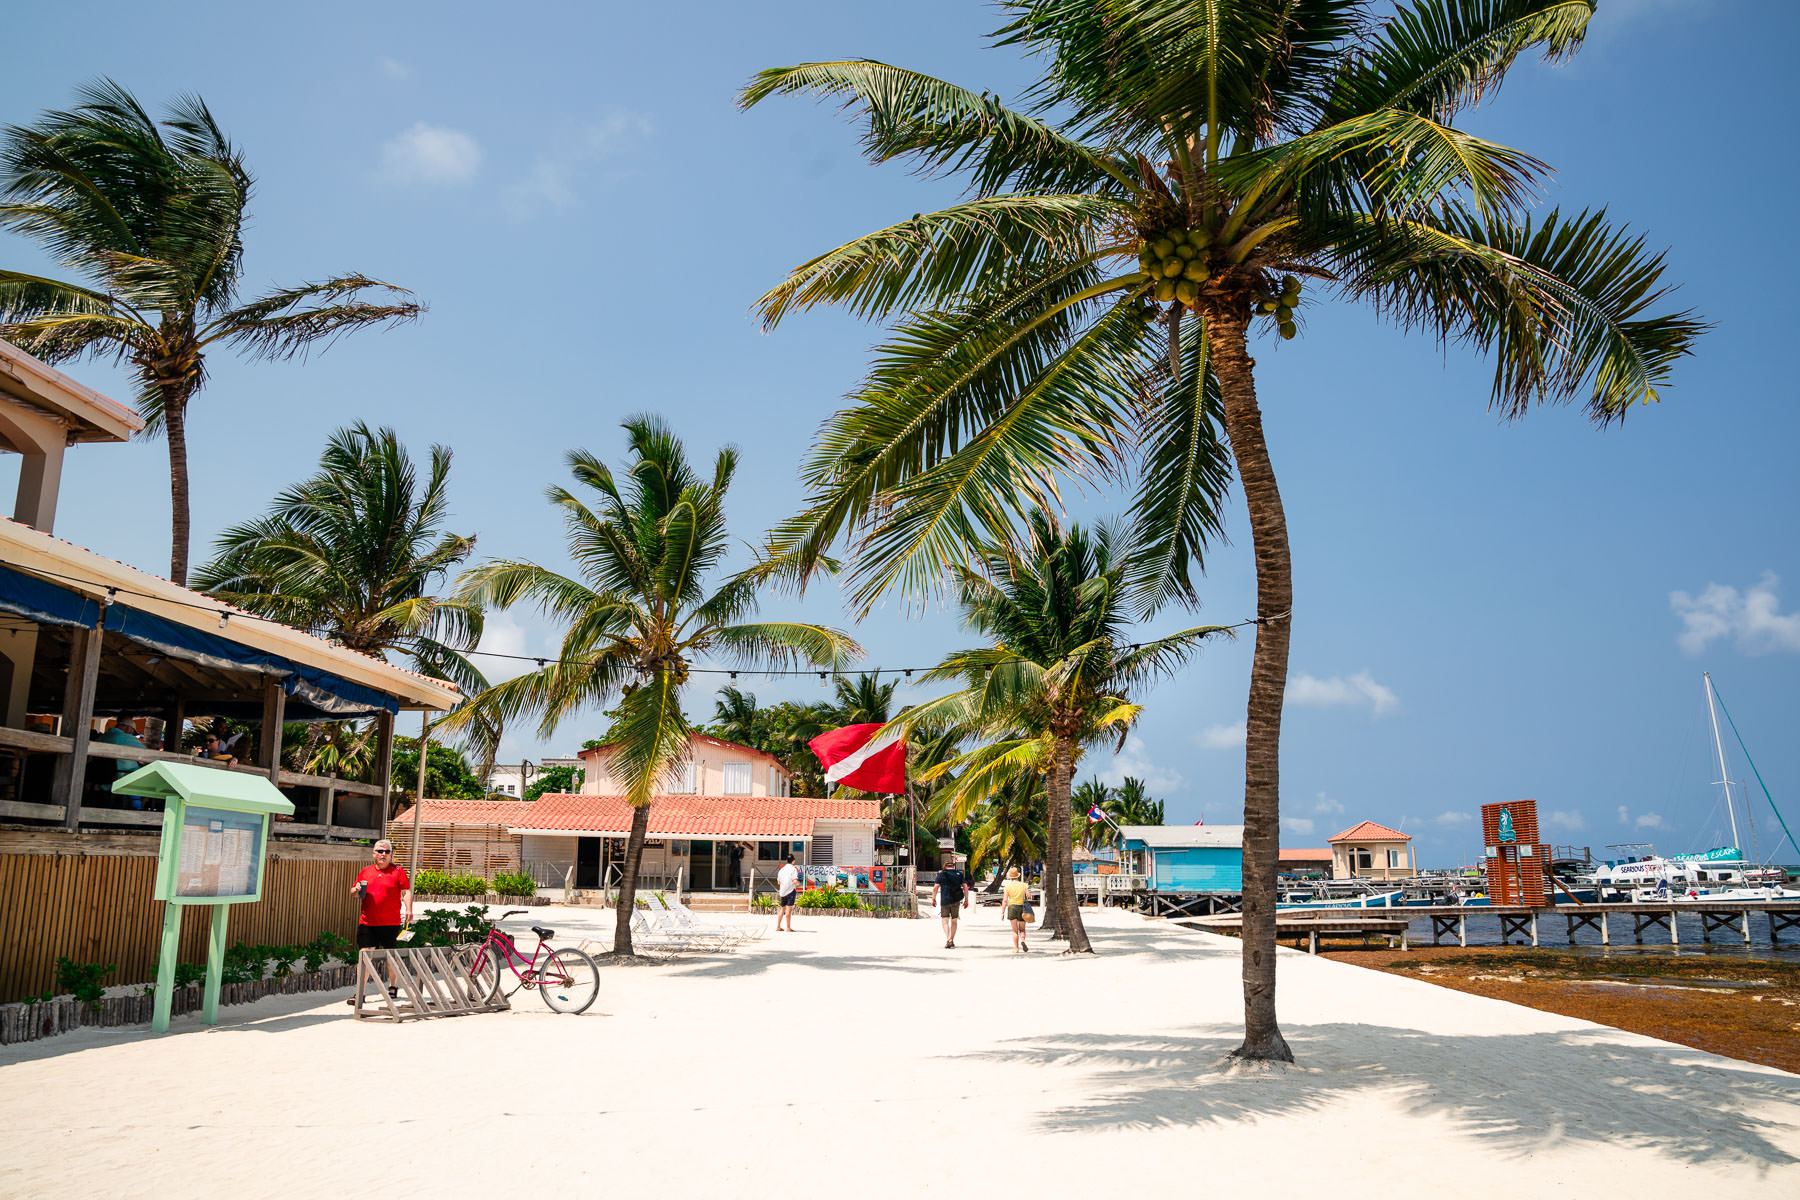 2018.04.29 Ambergris Caye San Pedro Belize © Jennifer Carr Photography Virginia Beach-23.jpg